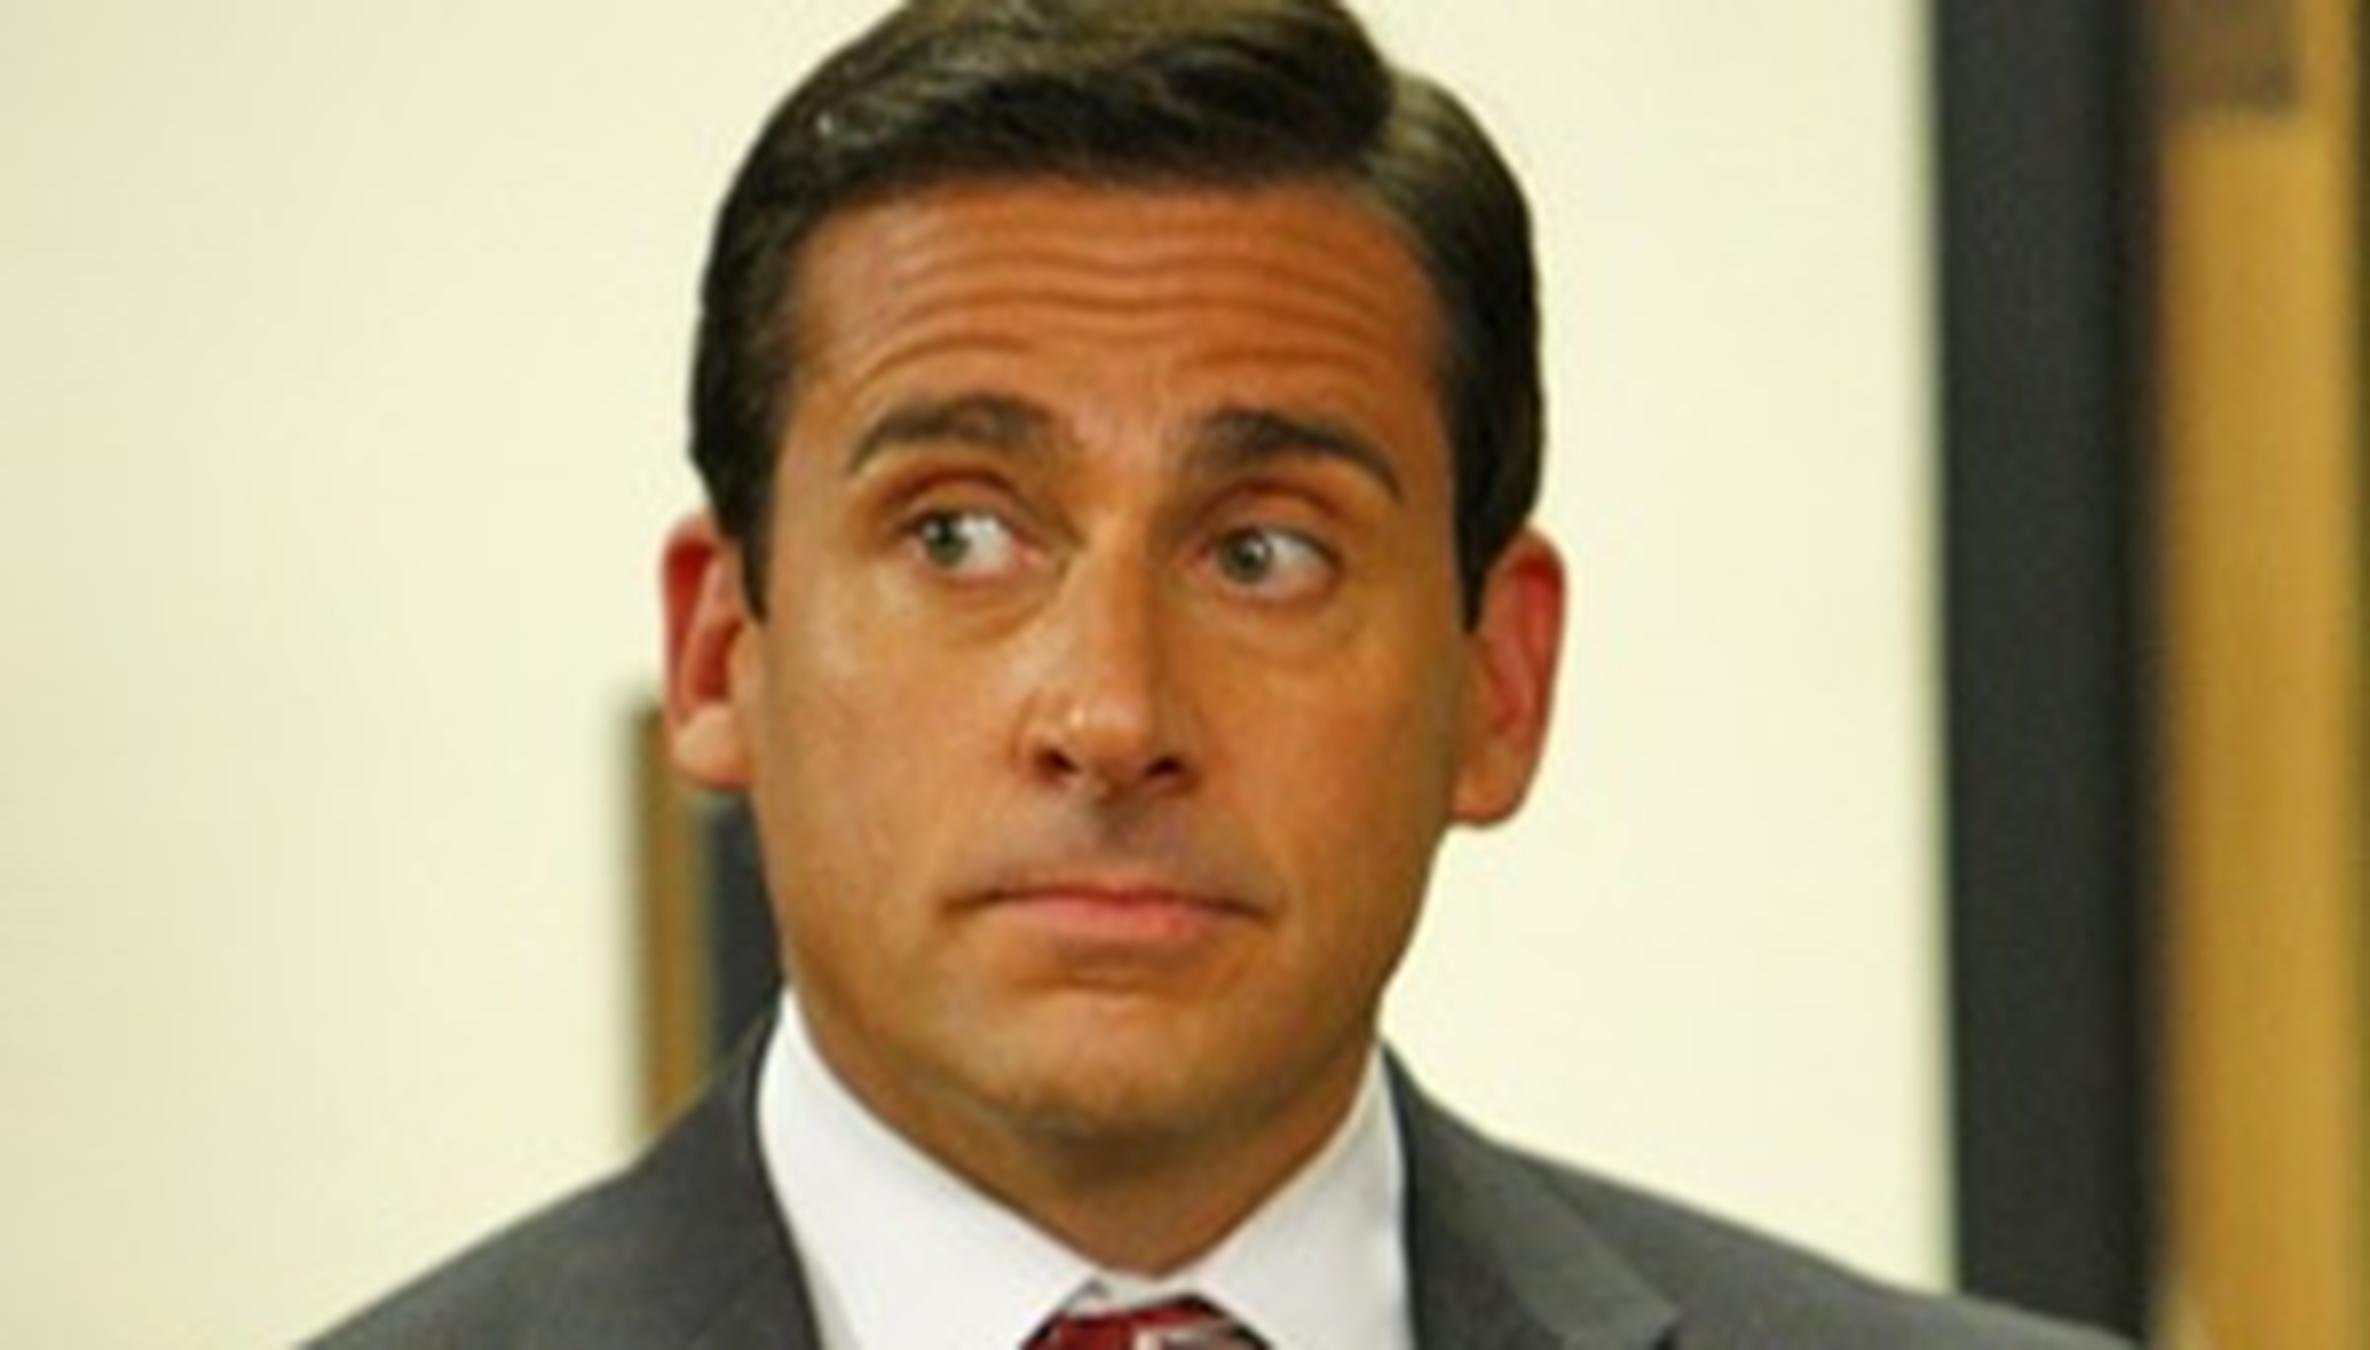 Steve Carell Leaves The Office After 7 Seasons